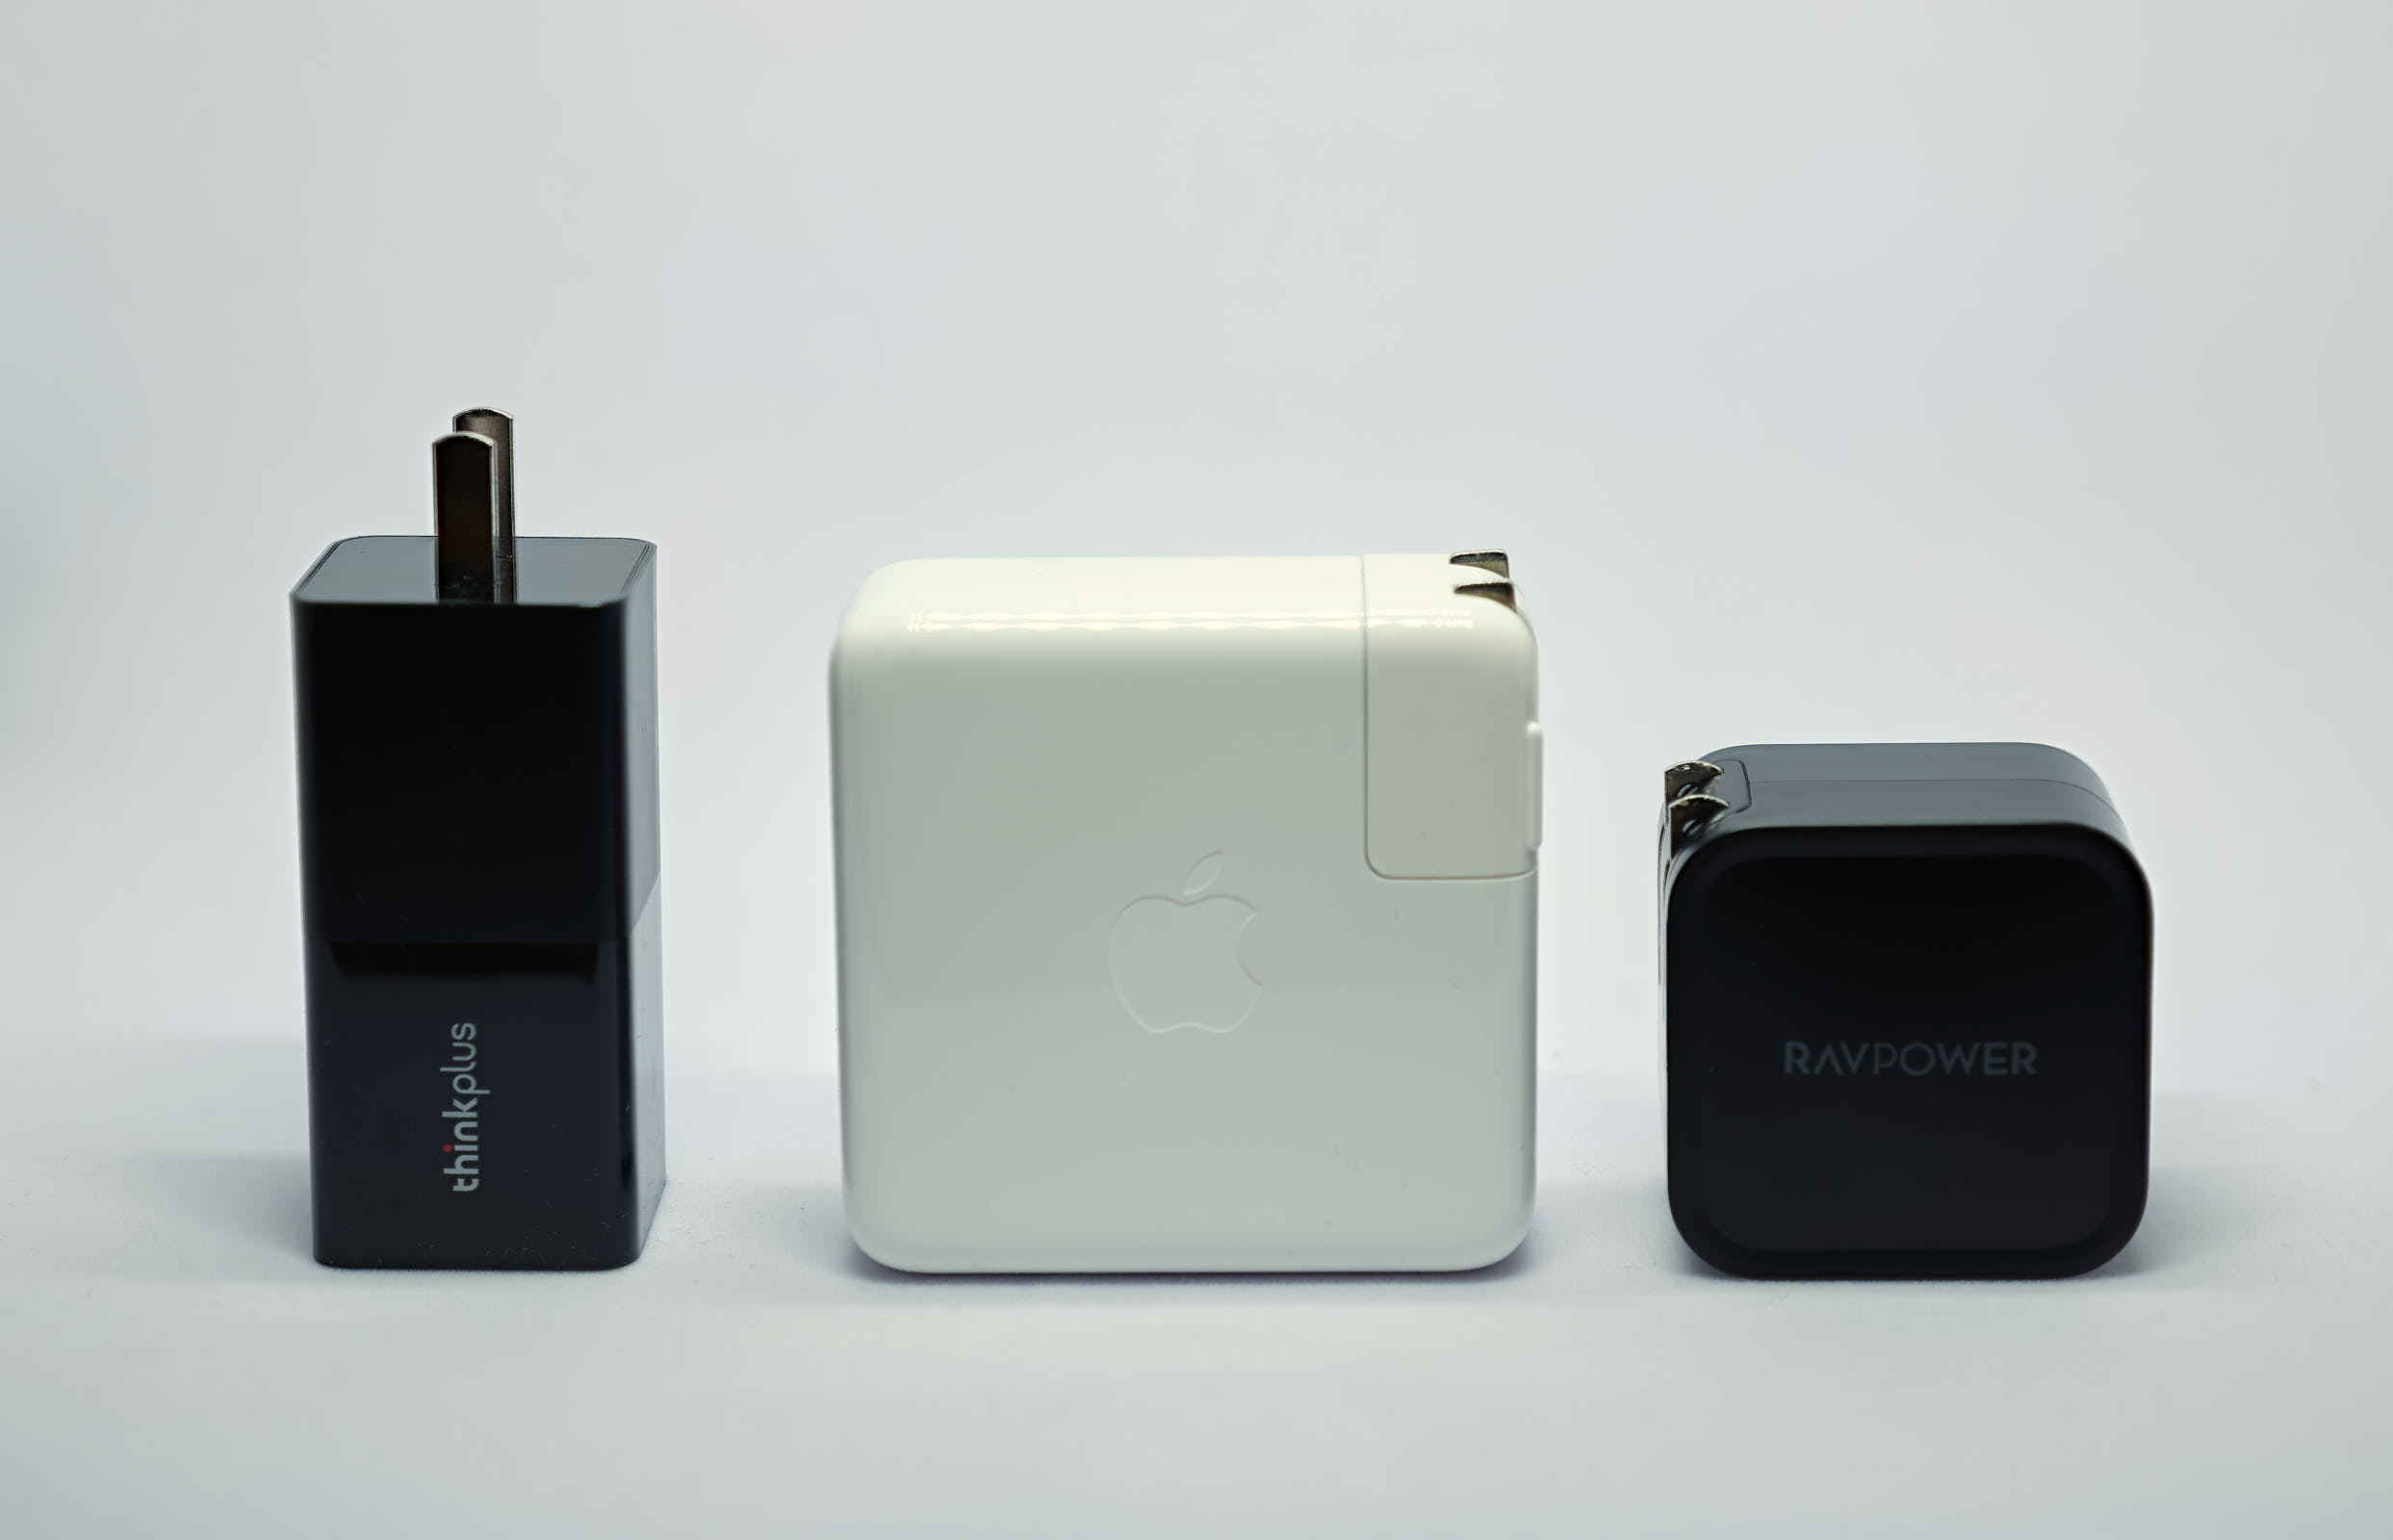 Thinkplus GaN vs. Apple vs. RAVPower GaN Chargers